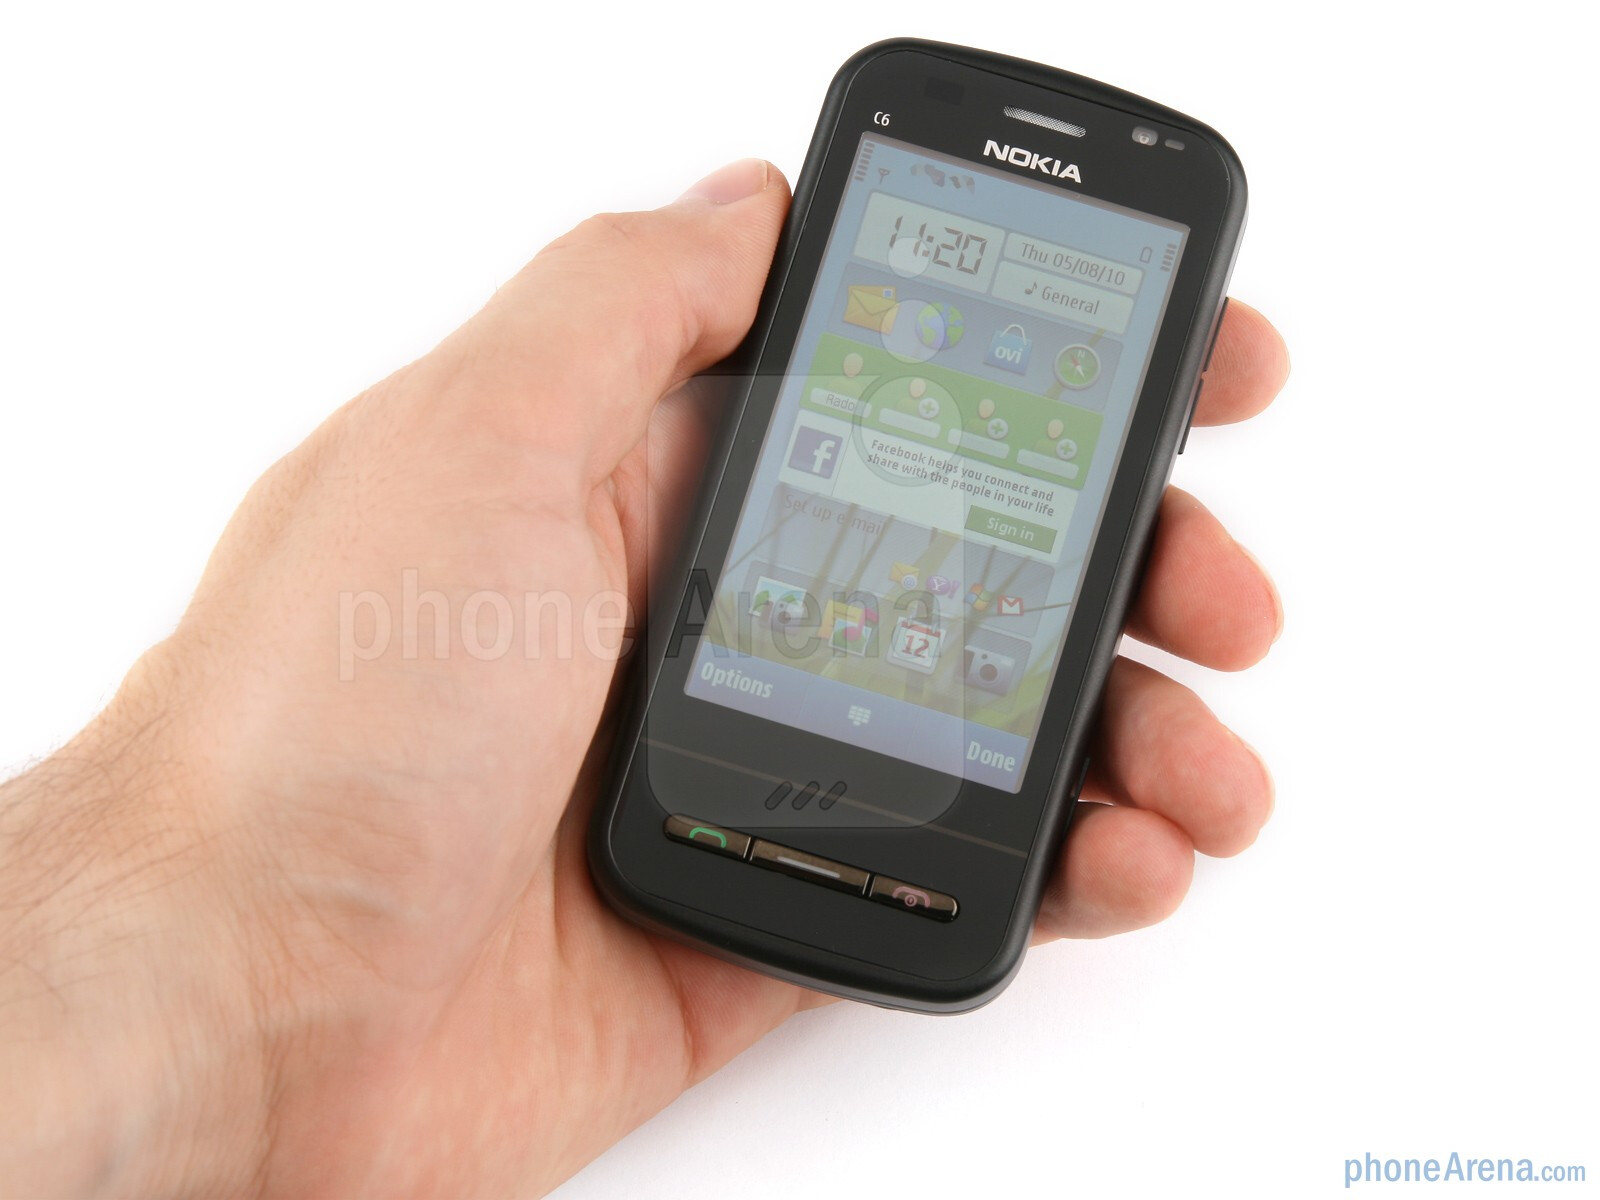 The nokia c6 is no lightweight at 529 oz